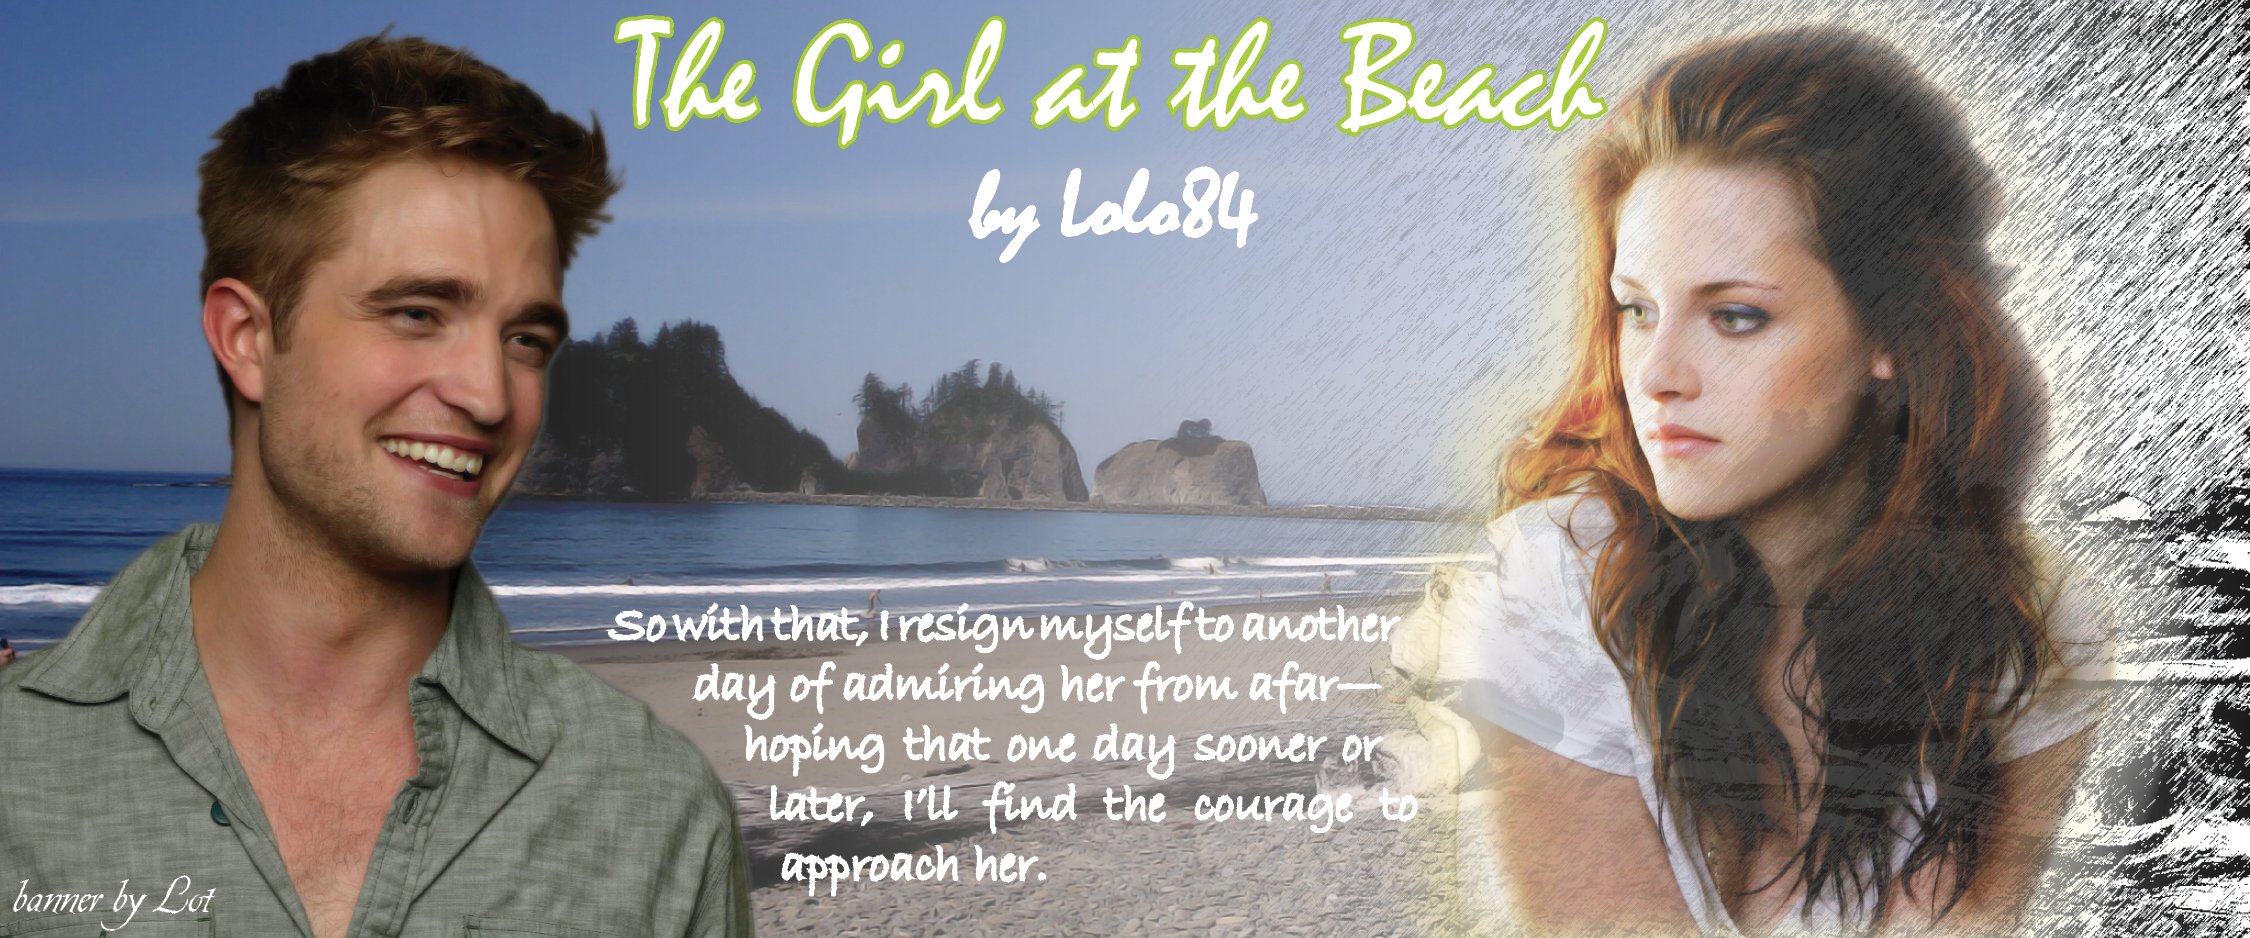 The Girl at the Beach